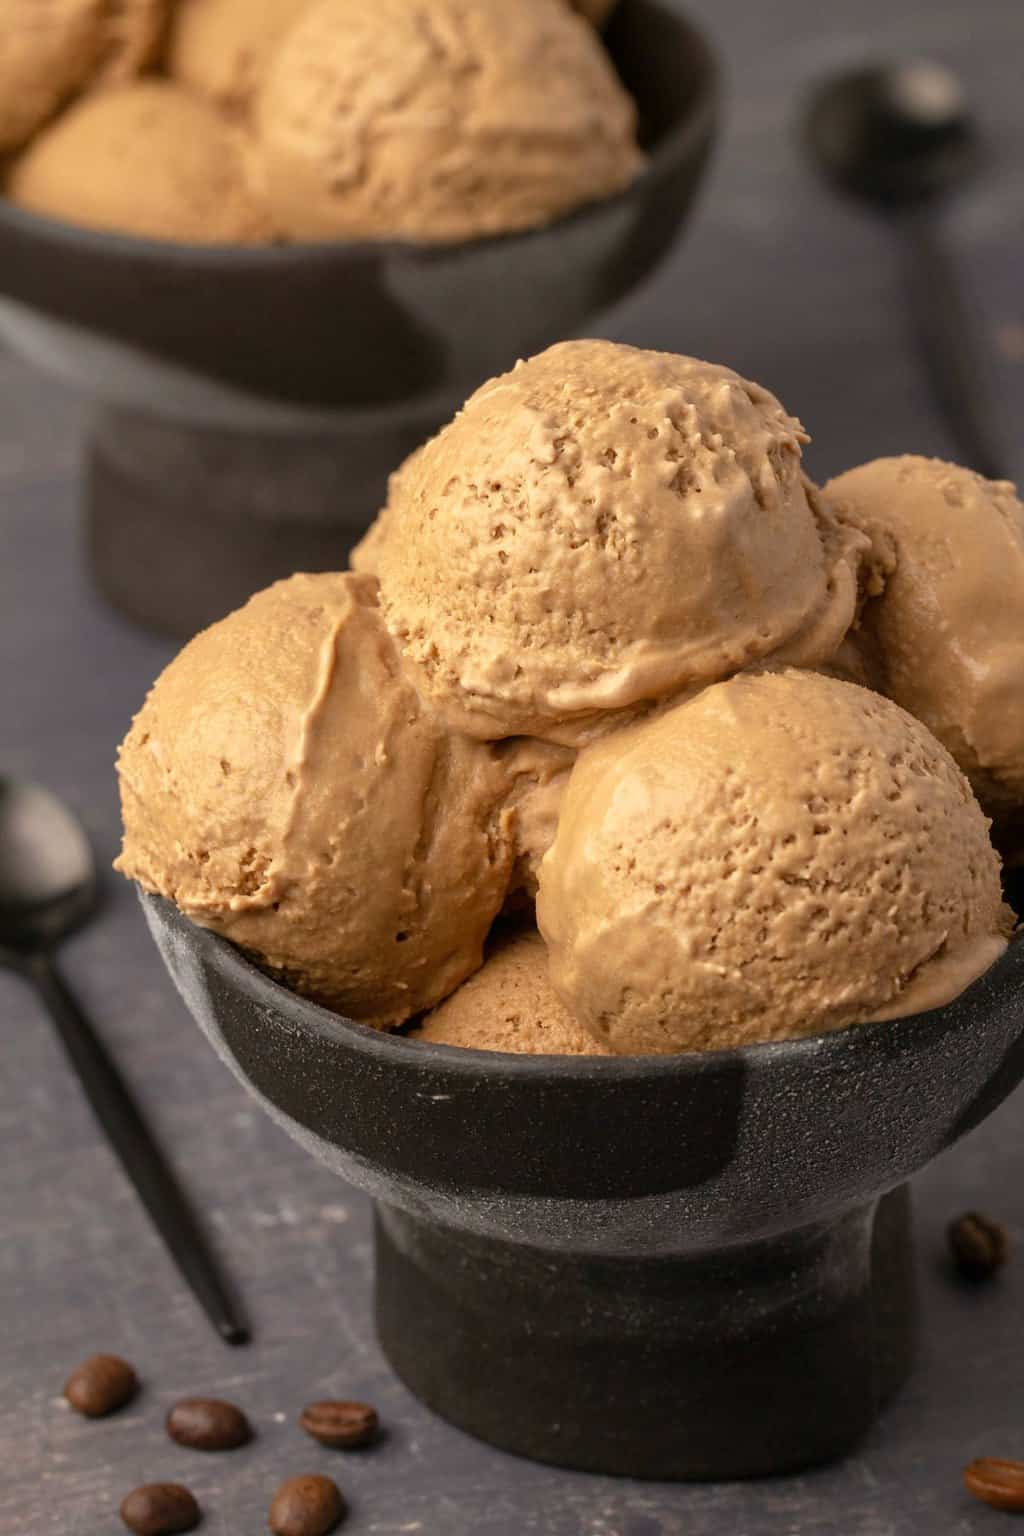 Scoops of vegan coffee ice cream in black bowls.